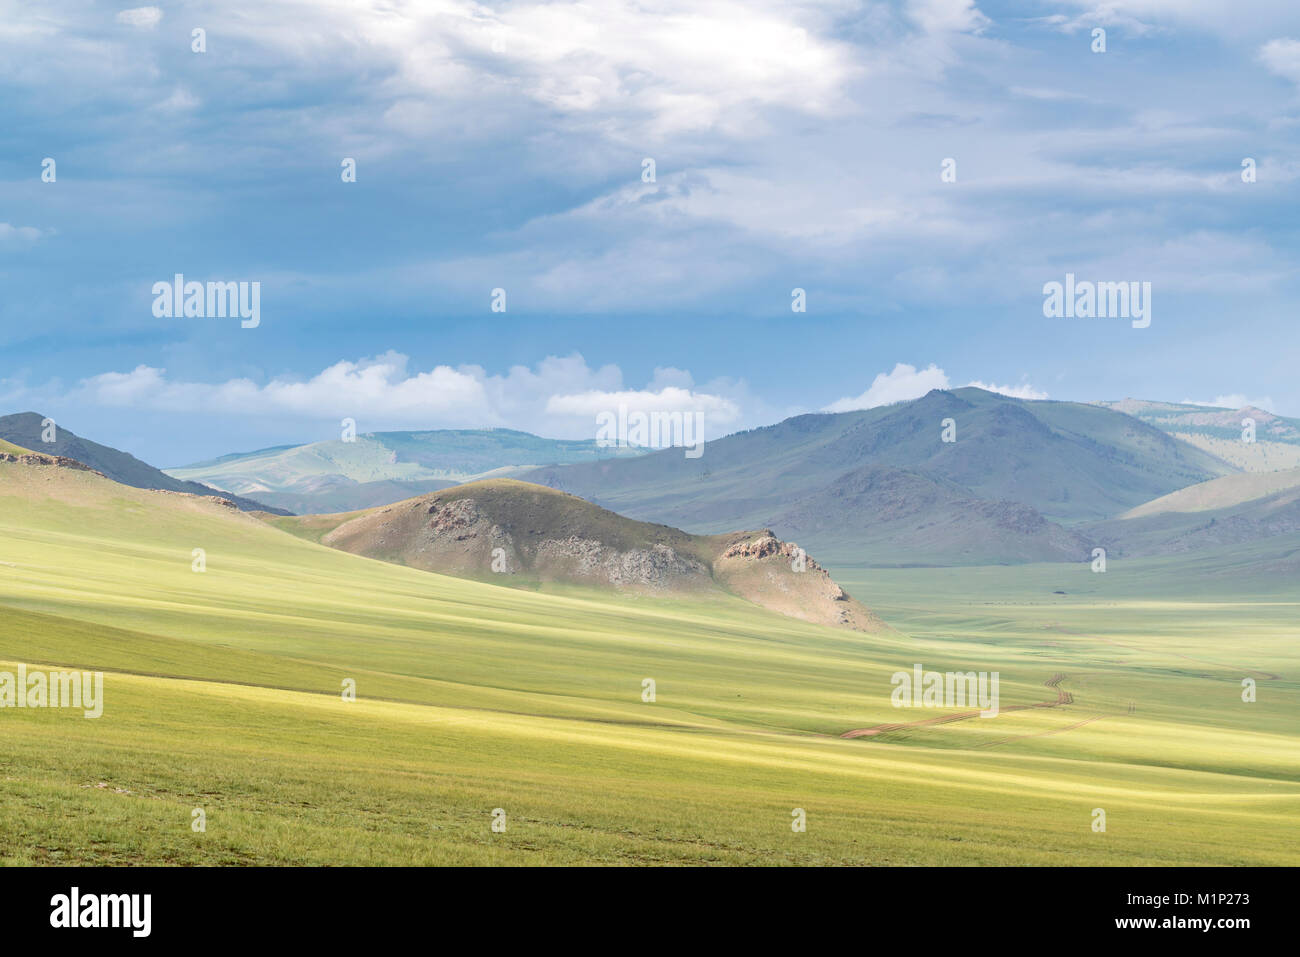 Landscape of the green Mongolian steppe under a gloomy sky, Ovorkhangai province, Mongolia, Central Asia, Asia - Stock Image